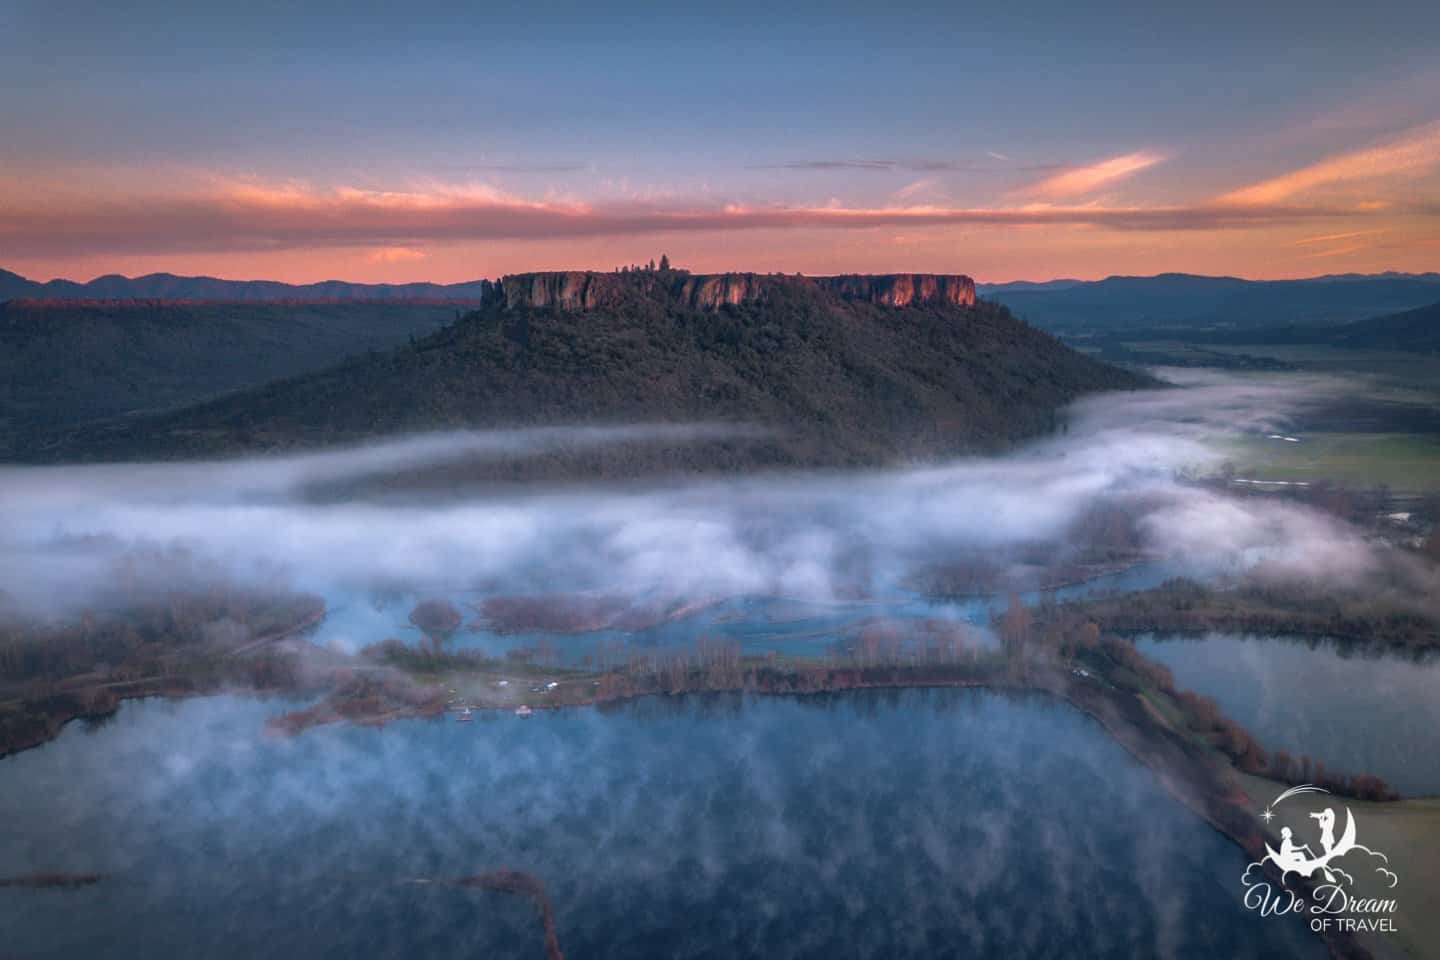 Visit Southern Oregon to experience a sunrise at Table Rock